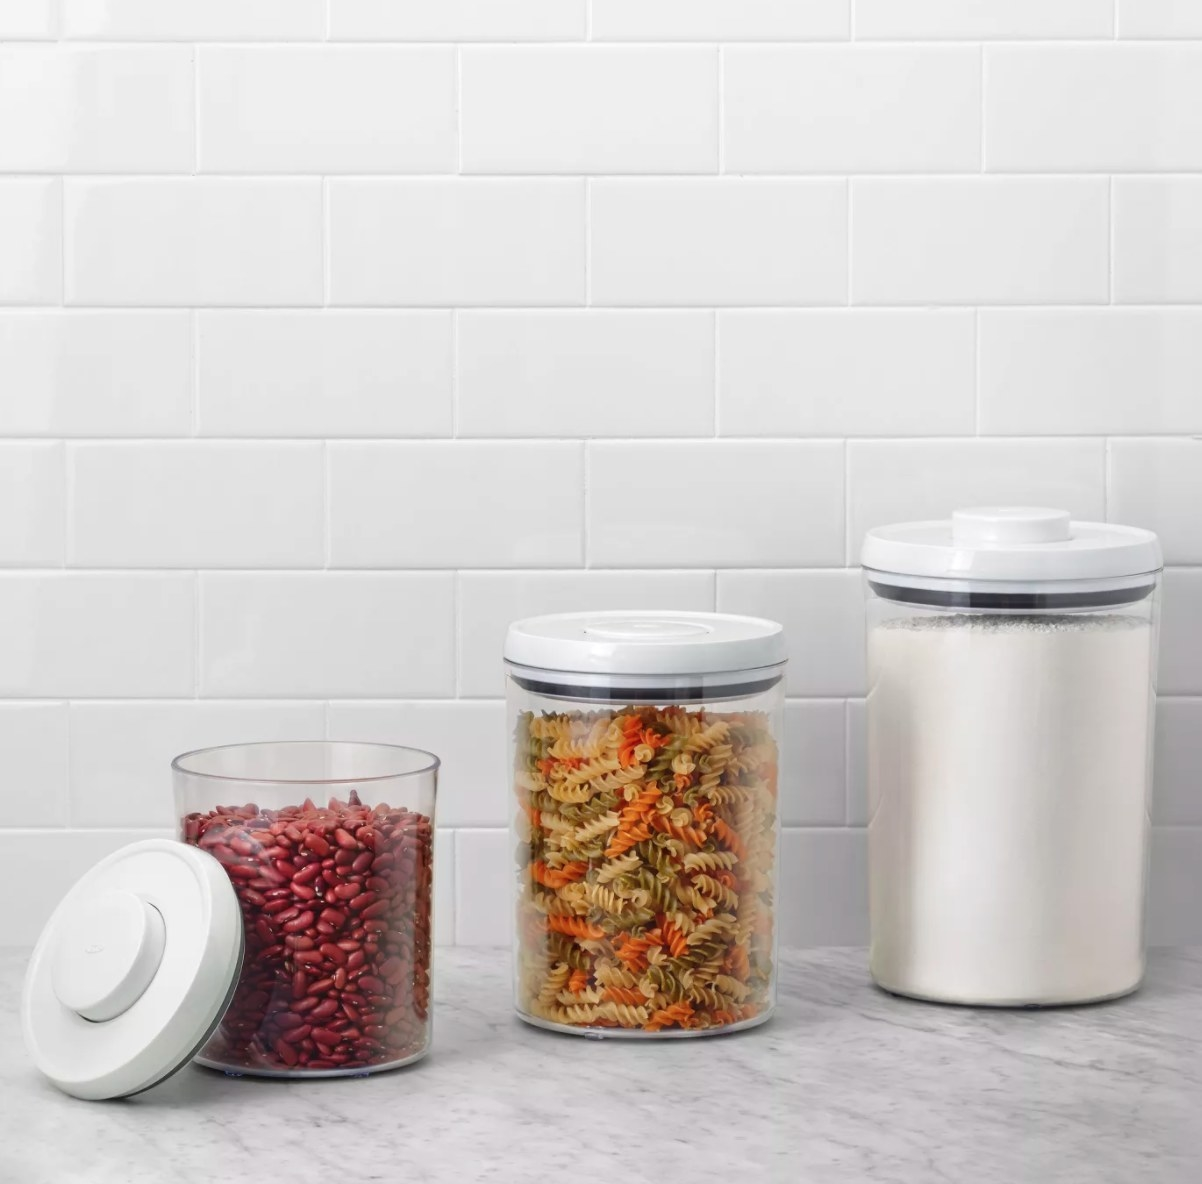 Three round plastic see-through canisters with white tops filled with foodstuffs